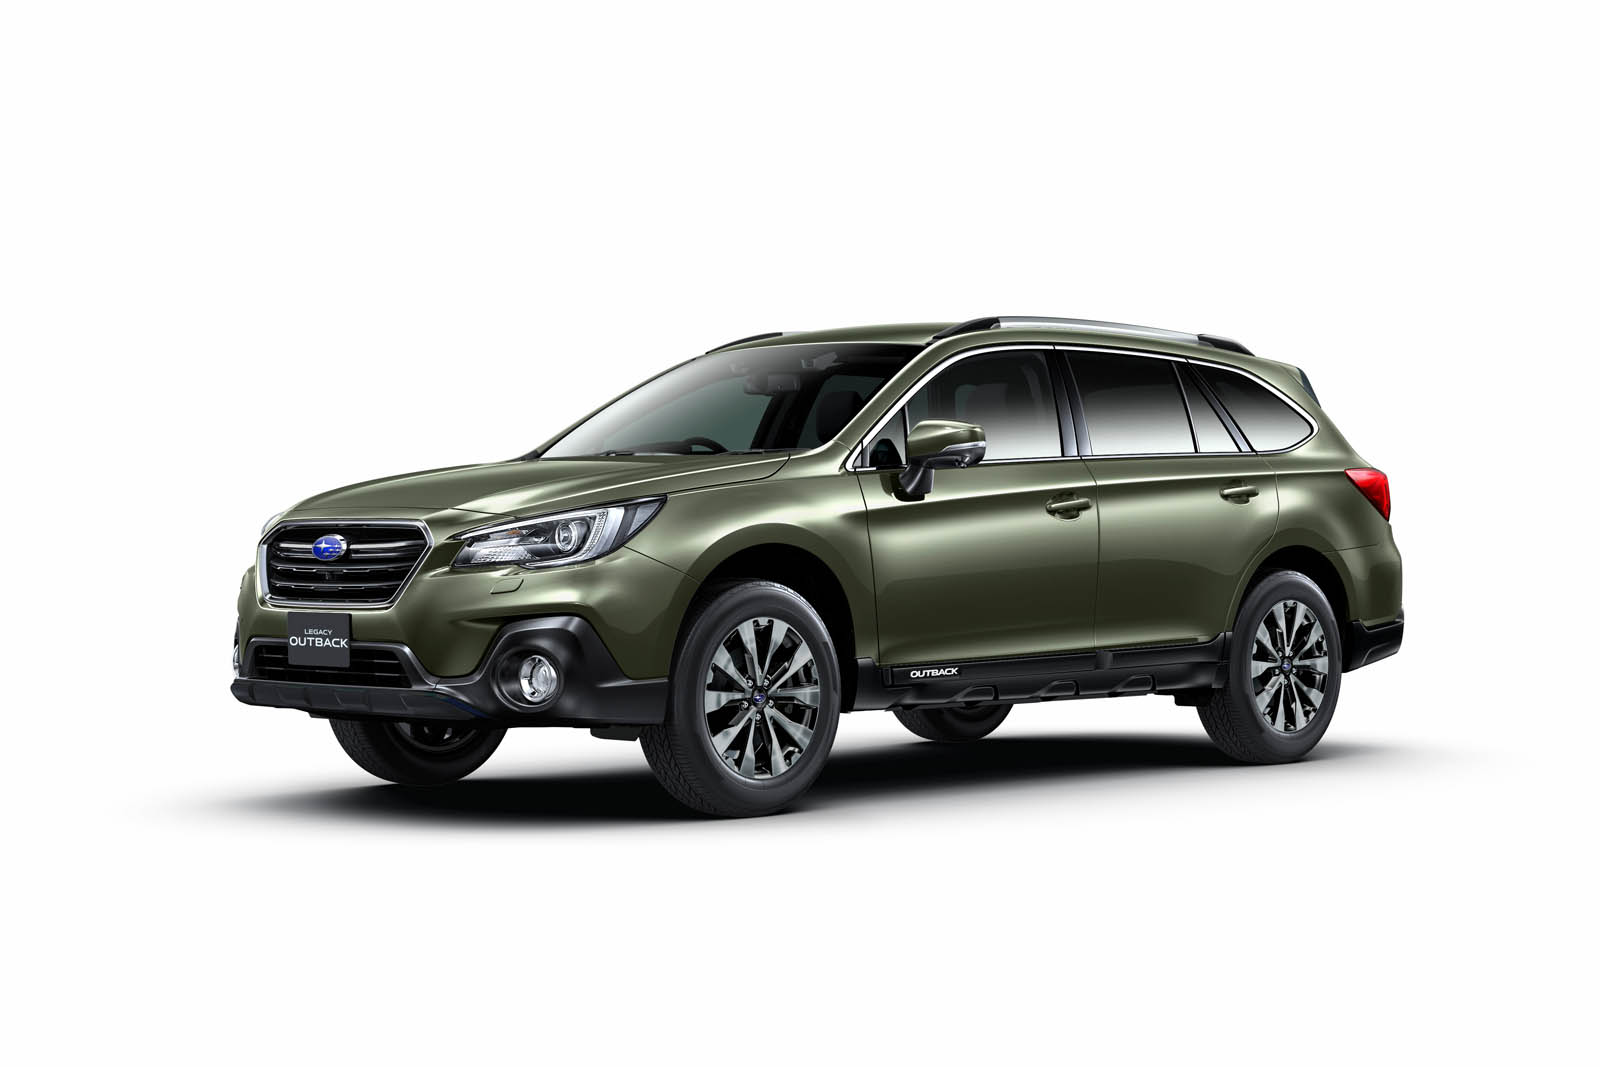 subaru showing customized impreza xv outback concepts in. Black Bedroom Furniture Sets. Home Design Ideas